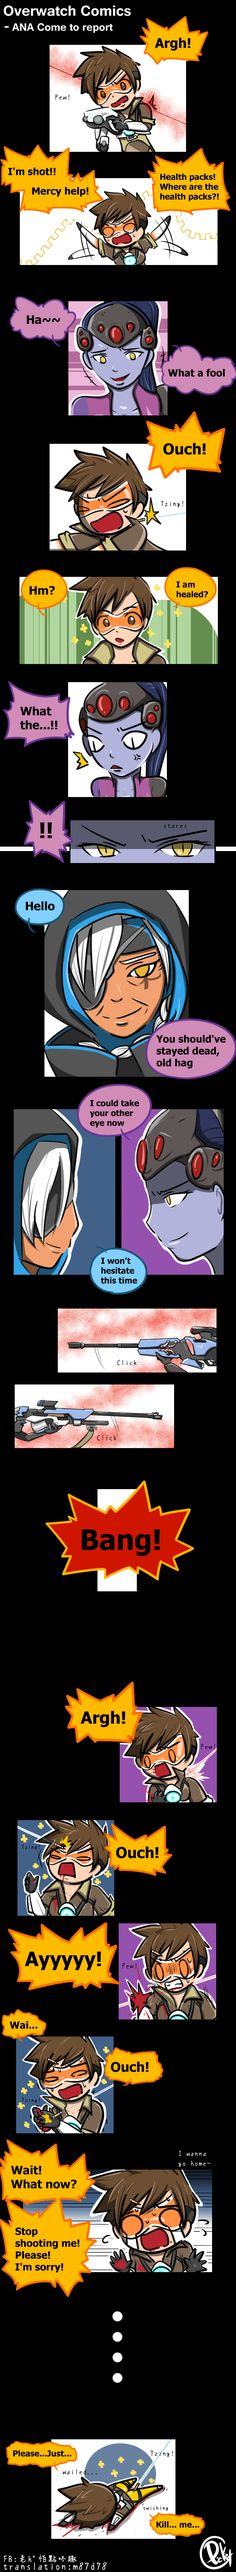 Overwatch Comics -ANA Come to report #ana #comics #overwatch #tracer #widowmaker #overwatchfanart #widowtracer #overwatchcomics